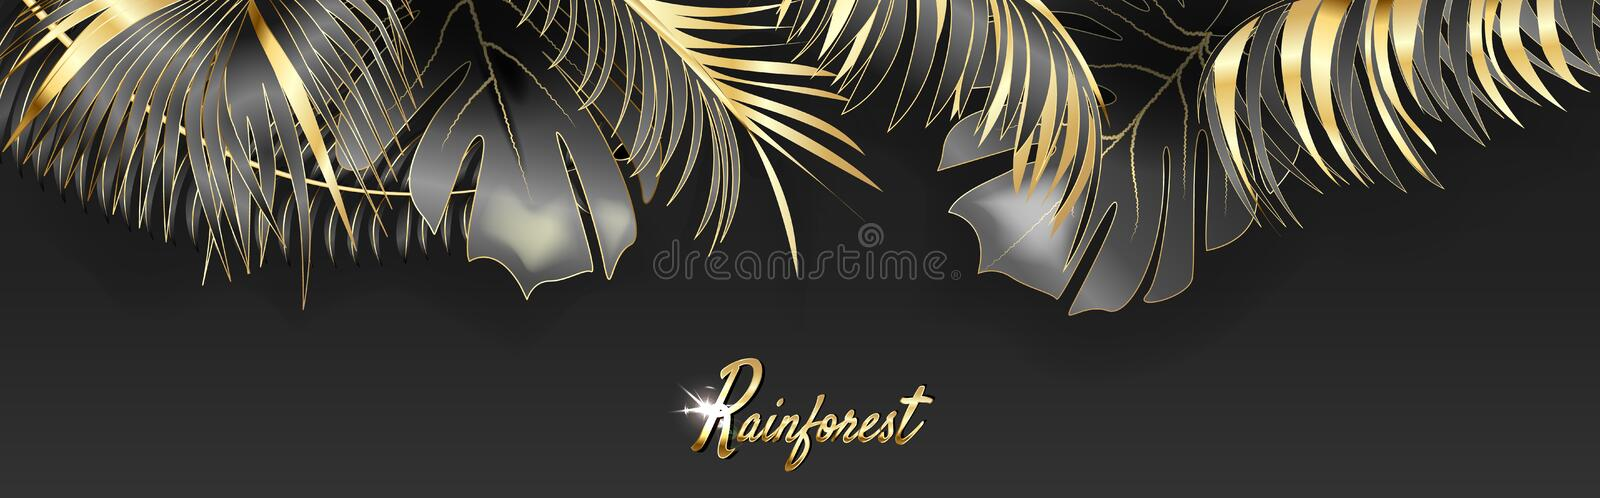 Vector horizontal banner with gold, silver and black tropical leaves on dark background. Rainforest. vector illustration